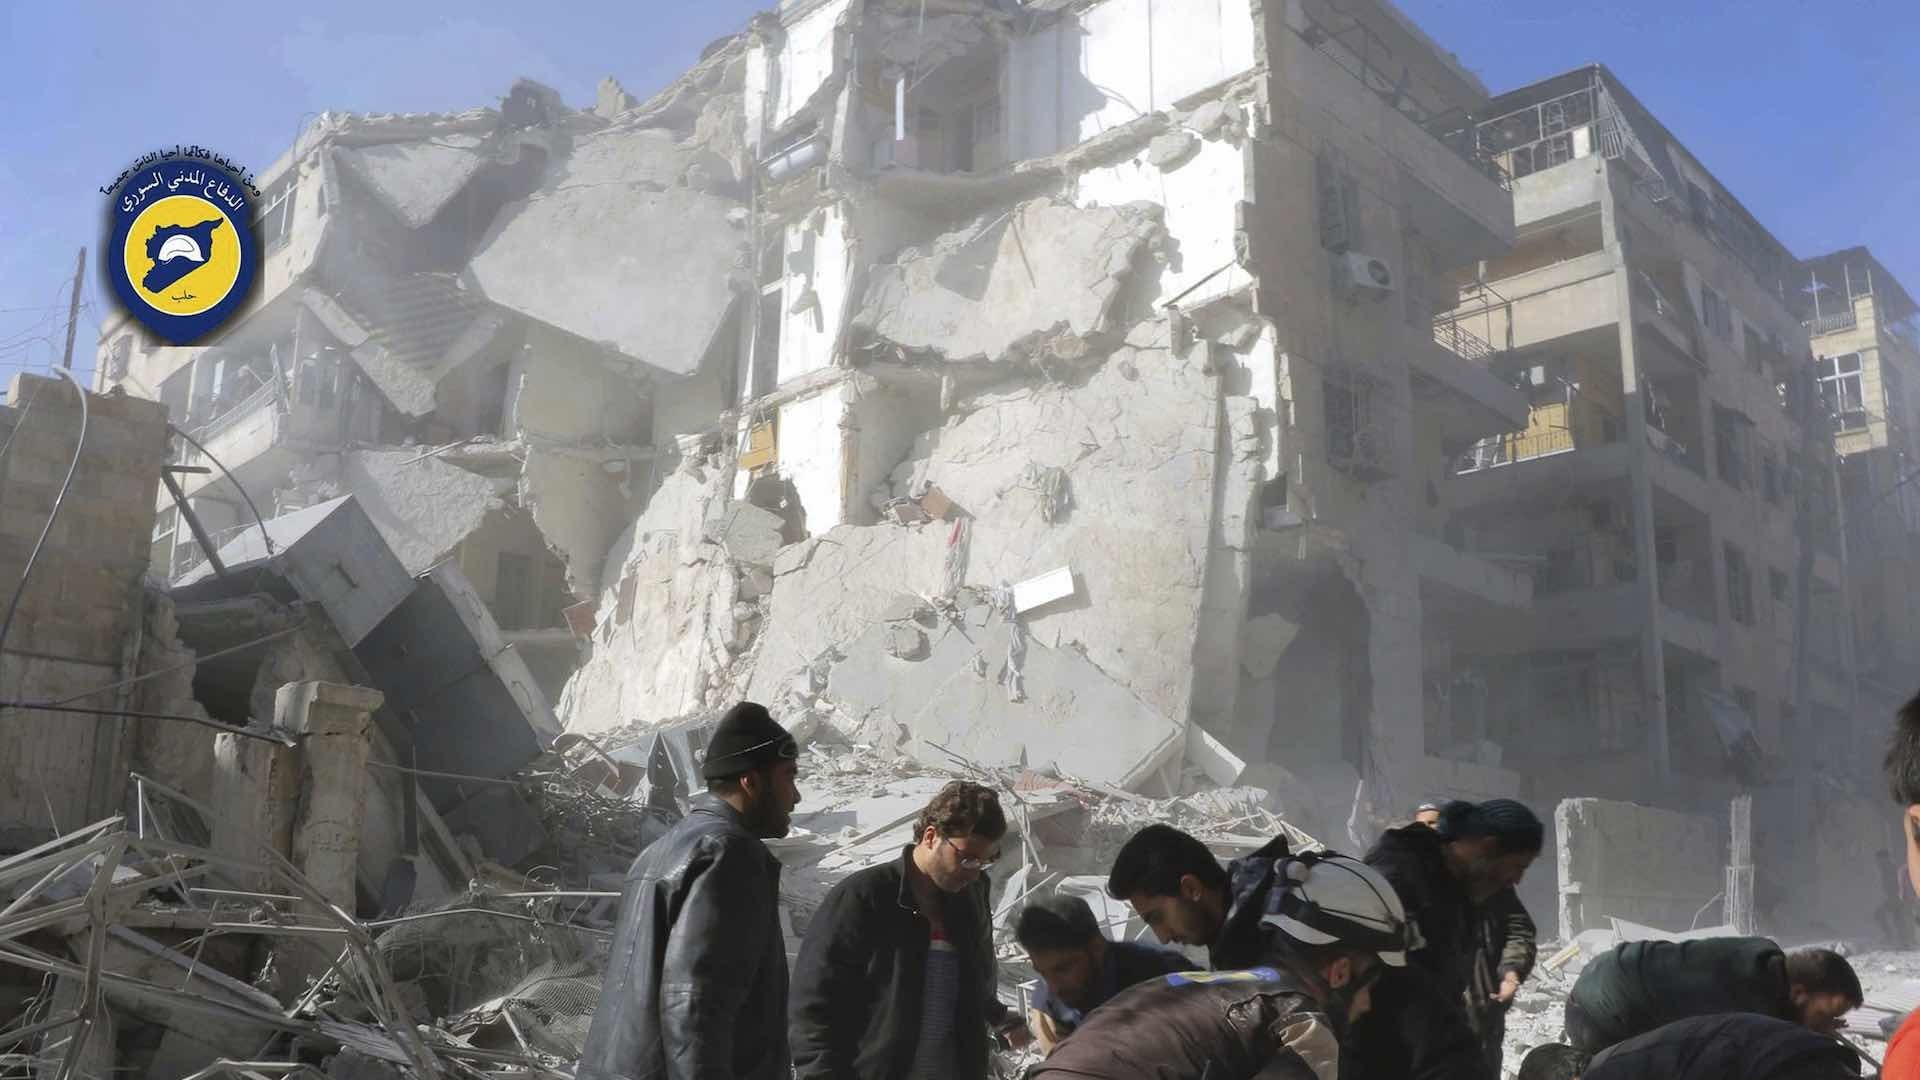 More death in Aleppo